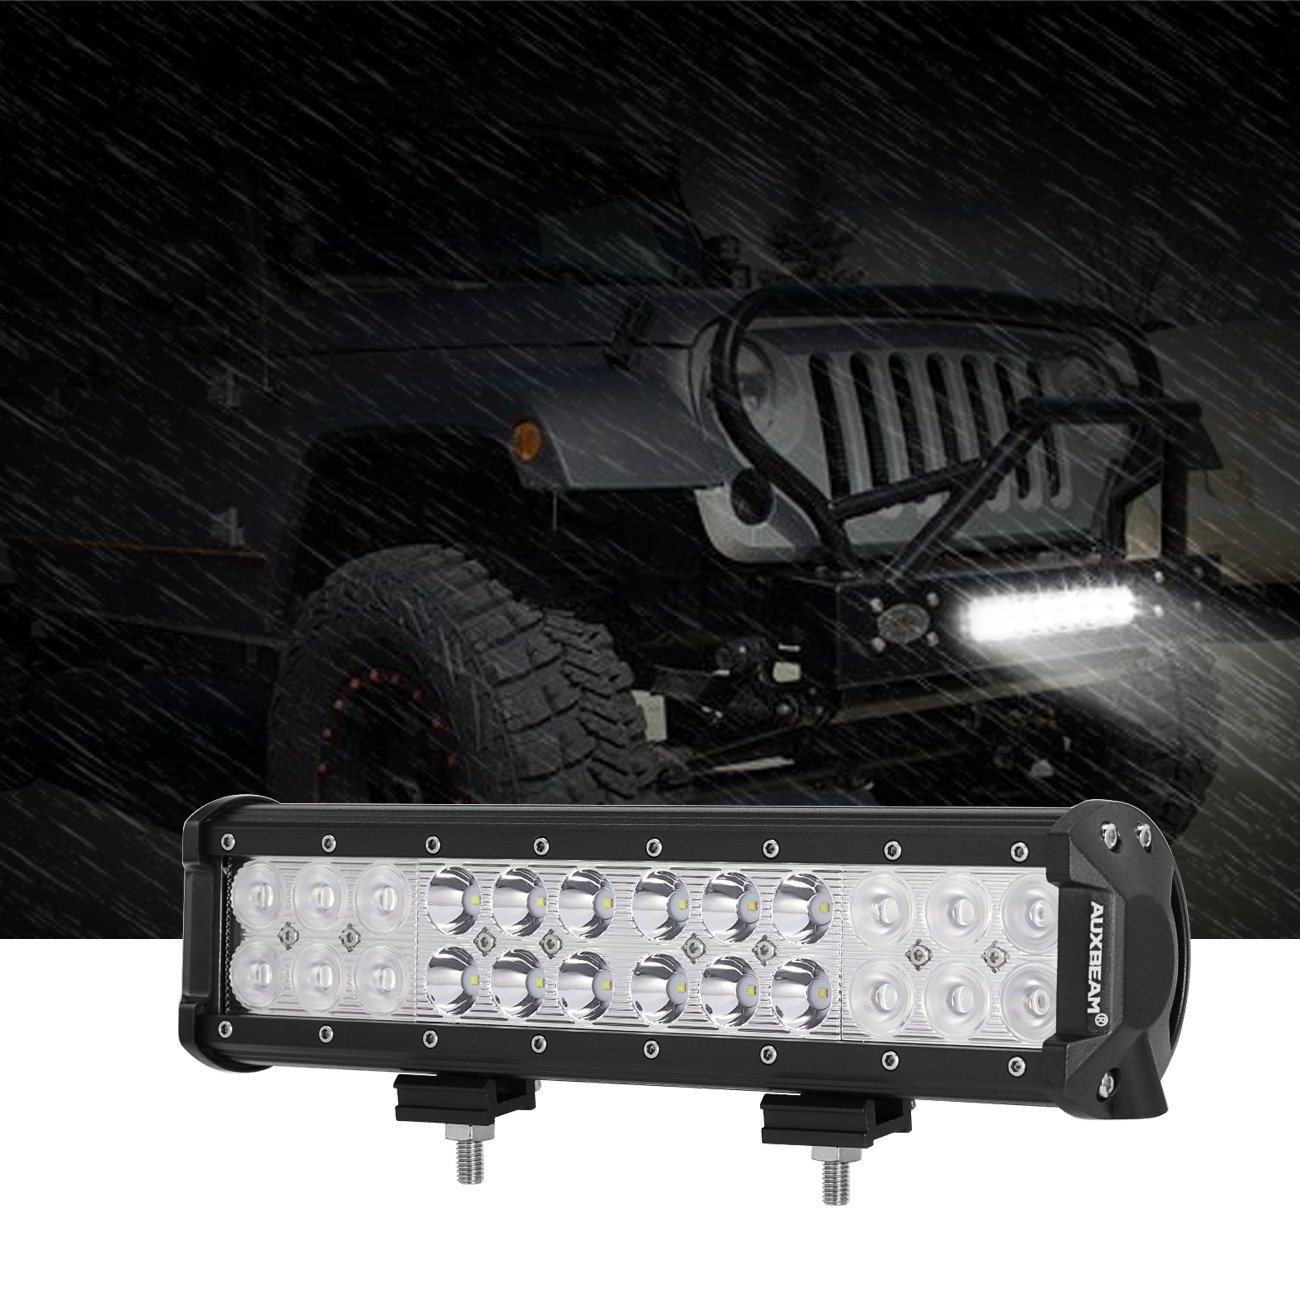 Auxbeam 12 Inch LED Light Bar with Wiring Harness 72W 7200lm Light Bar Combo Beams 24pcs 3W Led Chips Waterproof Led Work Light for Truck Pickup Jeep SUV ATV UTV 4332995591